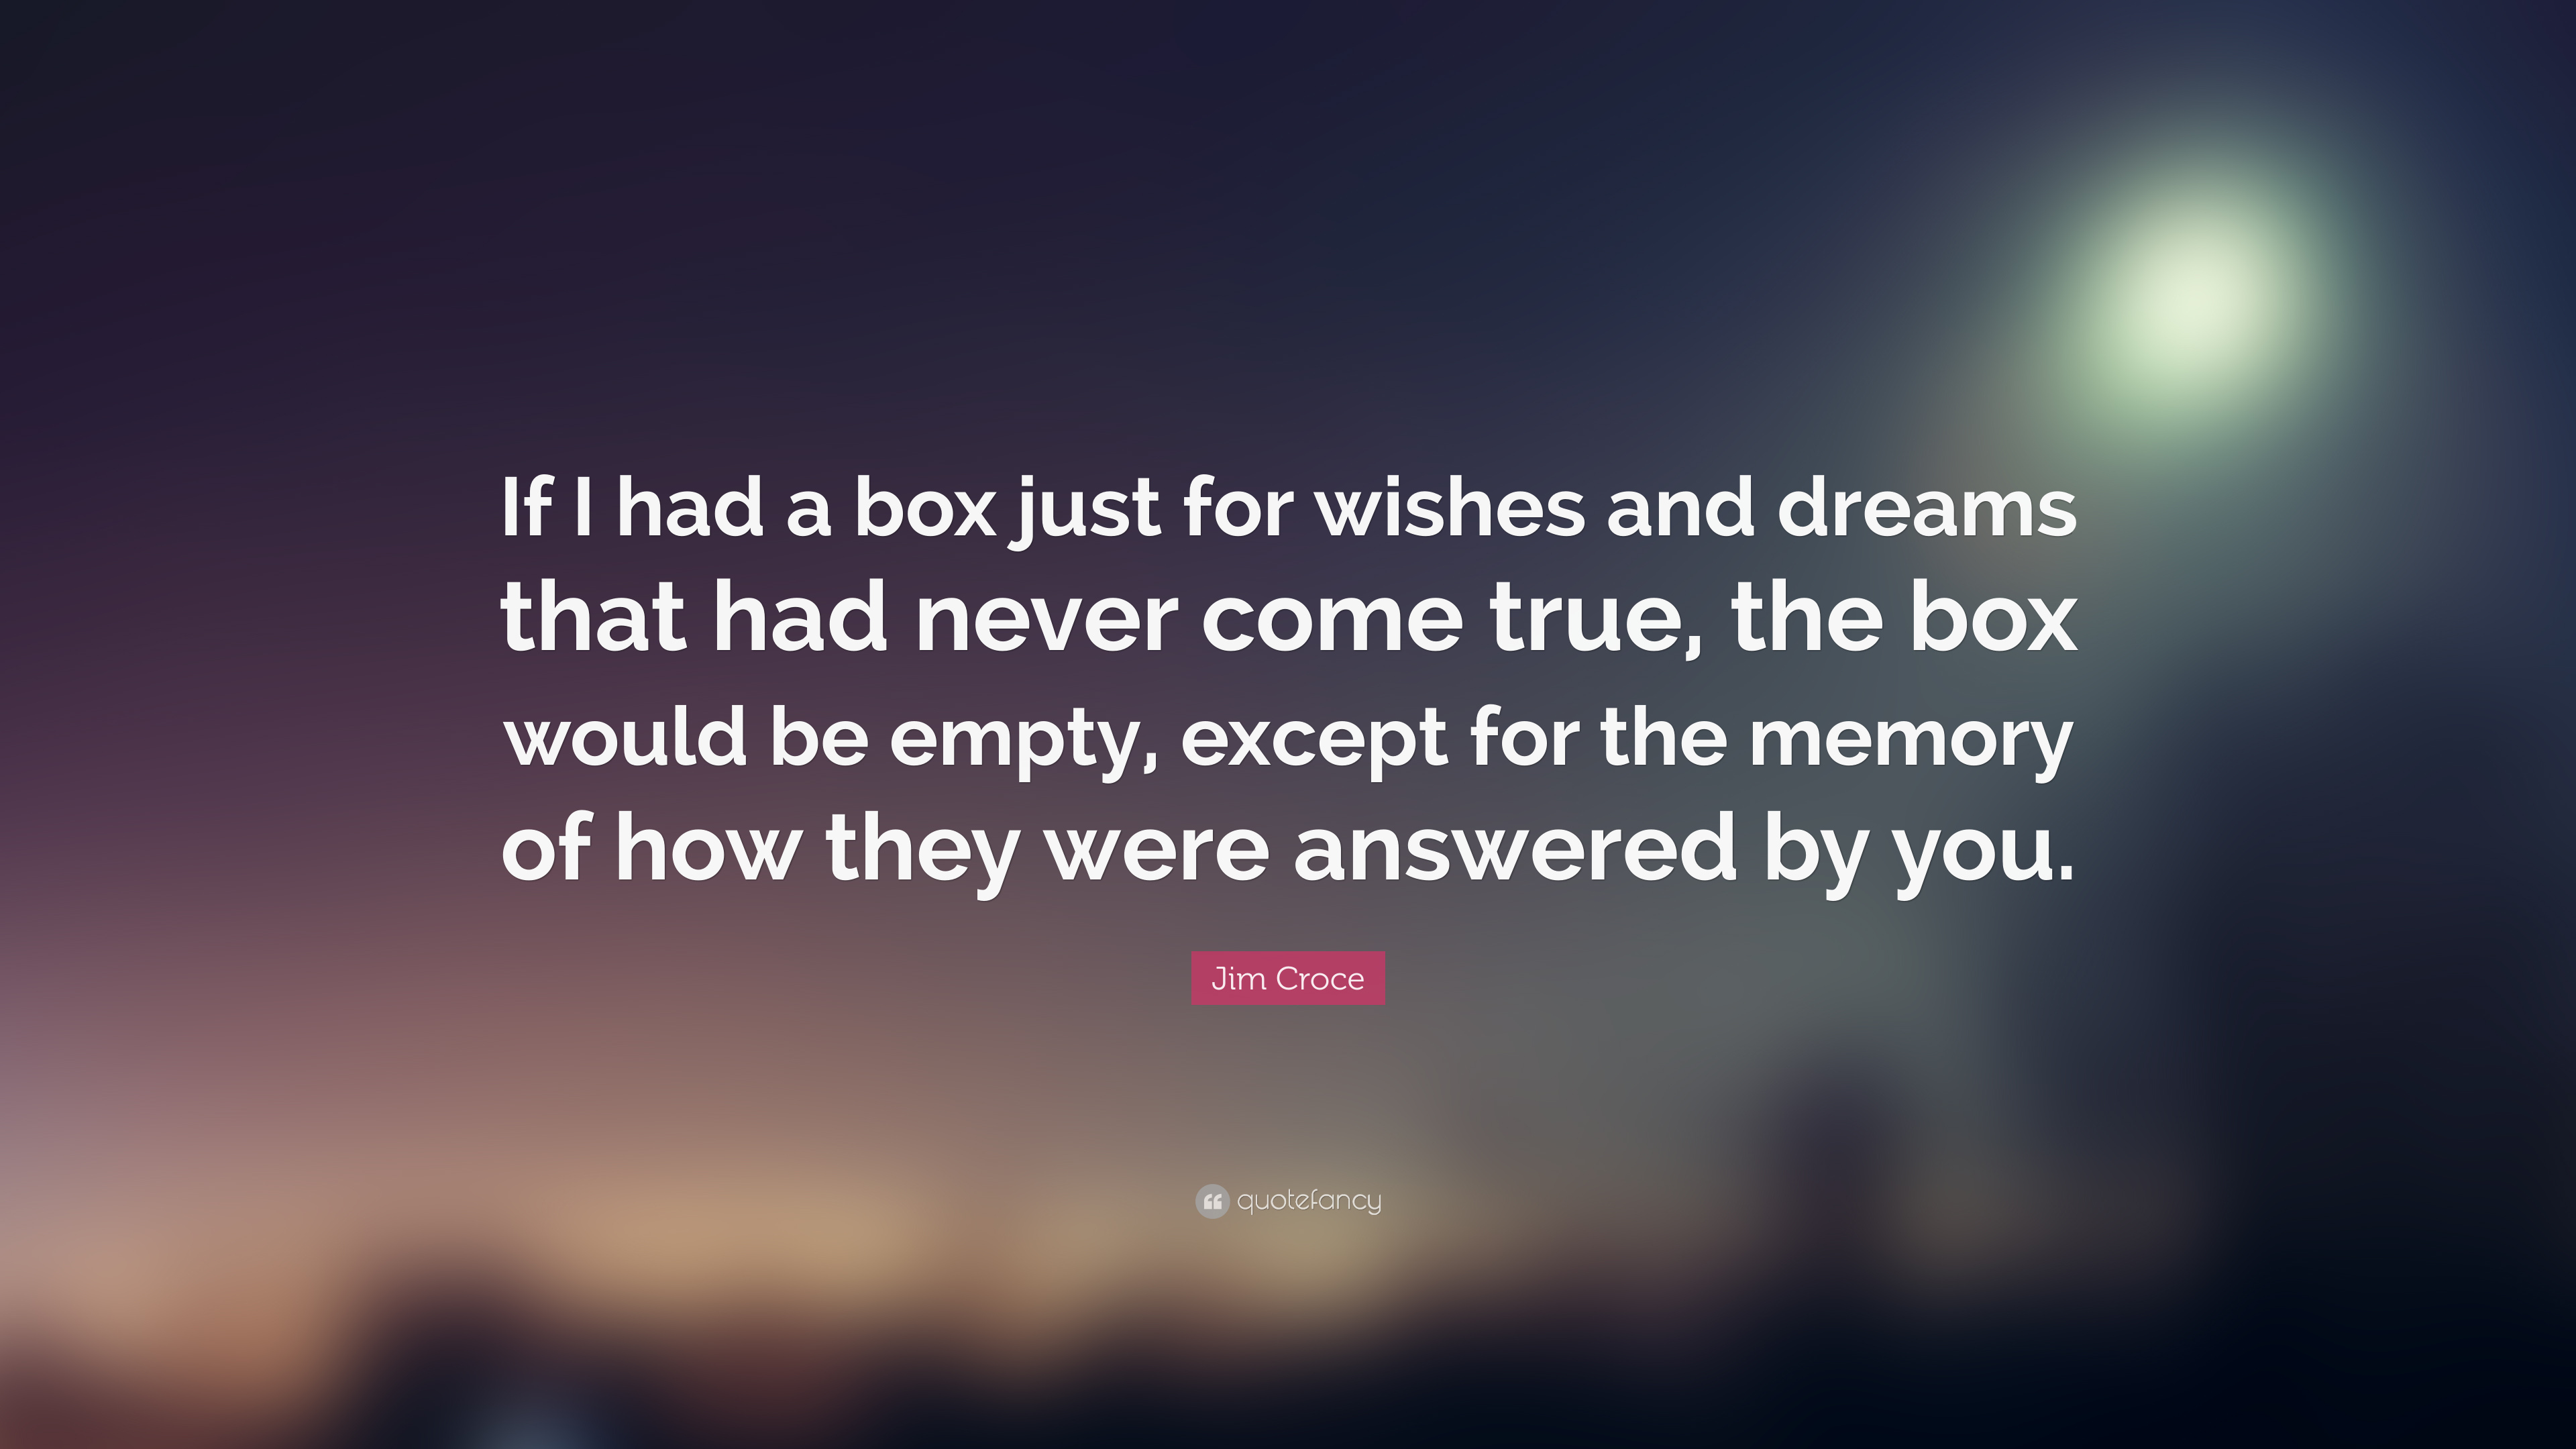 Jim Croce Quote If I Had A Box Just For Wishes And Dreams That Had